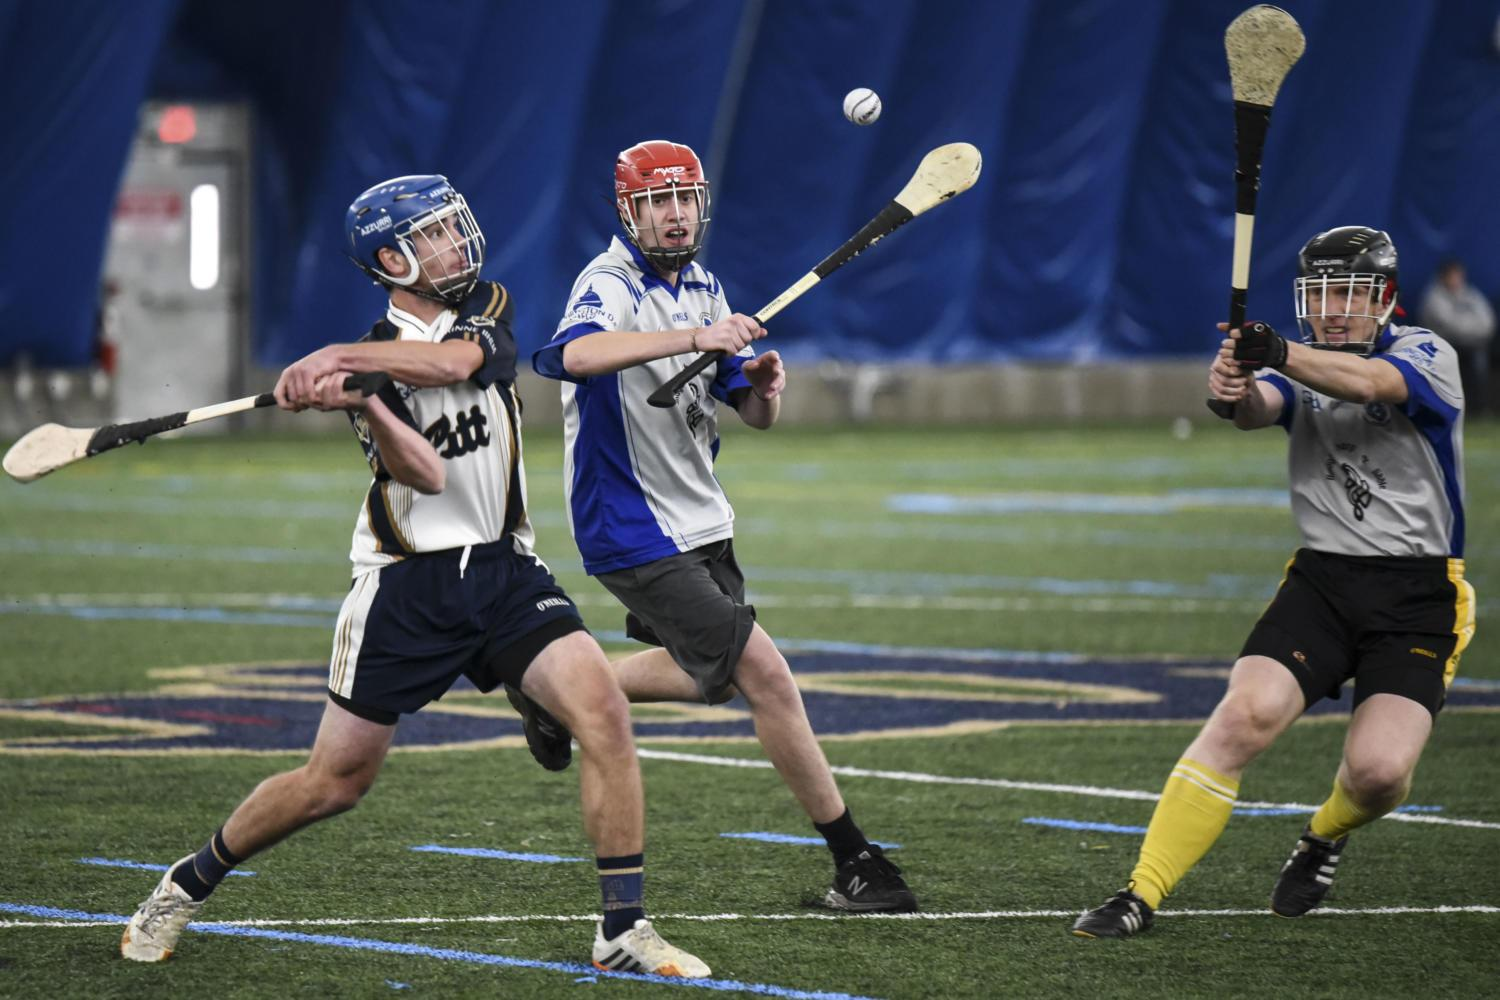 The club team played in the Midwest Finals against Purdue and the Washington, D.C., Gaels from Catholic University of America in November. (Photo by Matt Hawley | Staff Photographer)